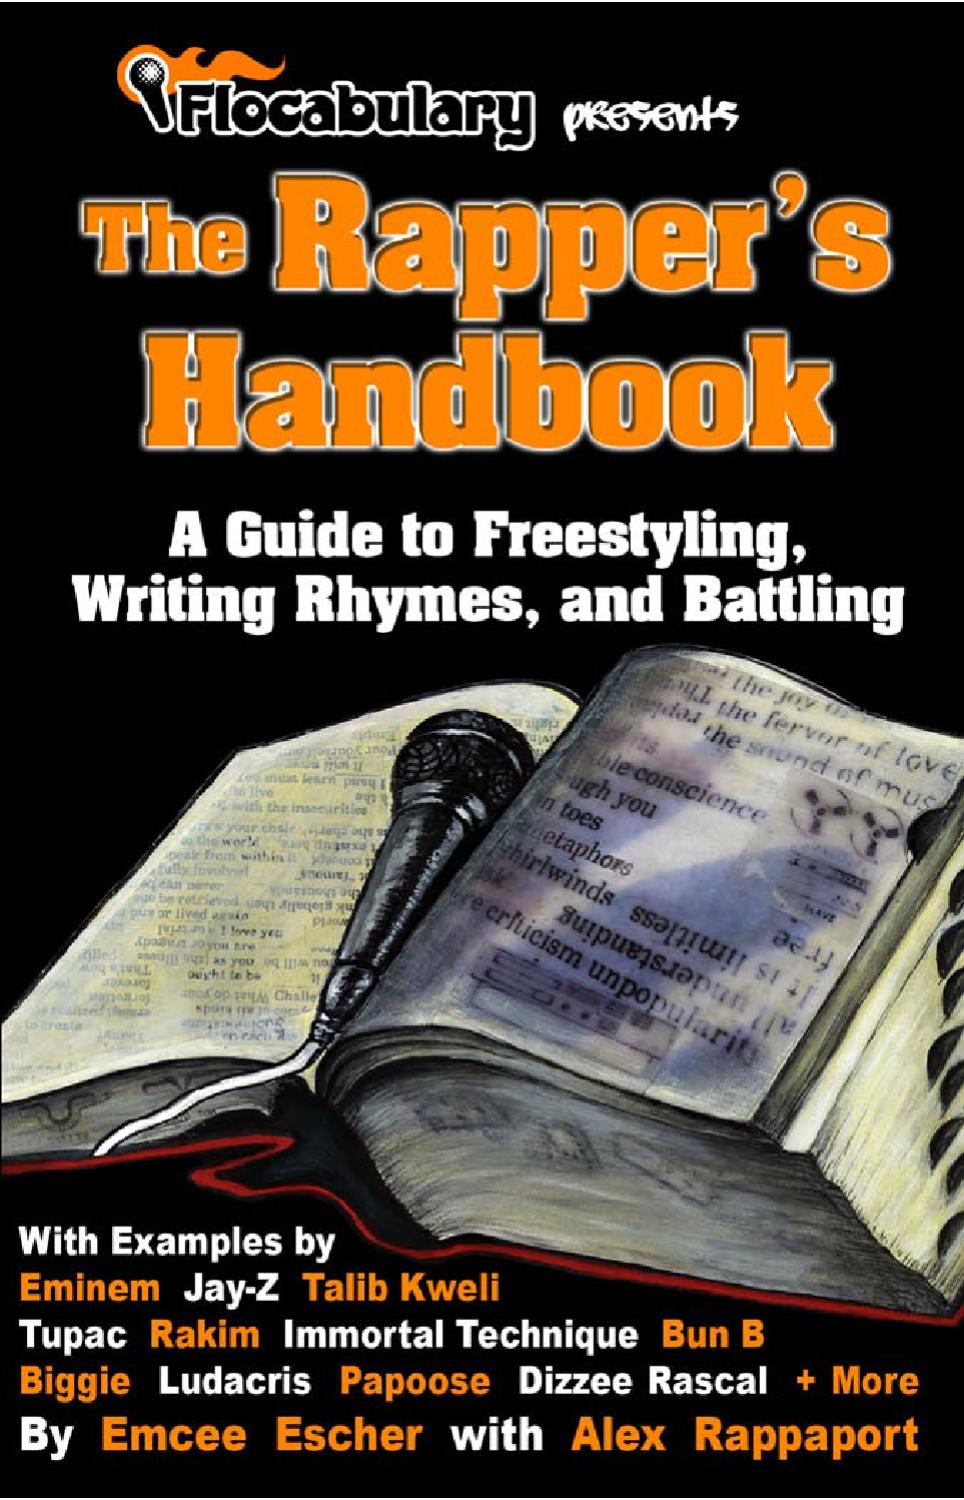 The rappers handbook by sandra sereikaite issuu malvernweather Gallery